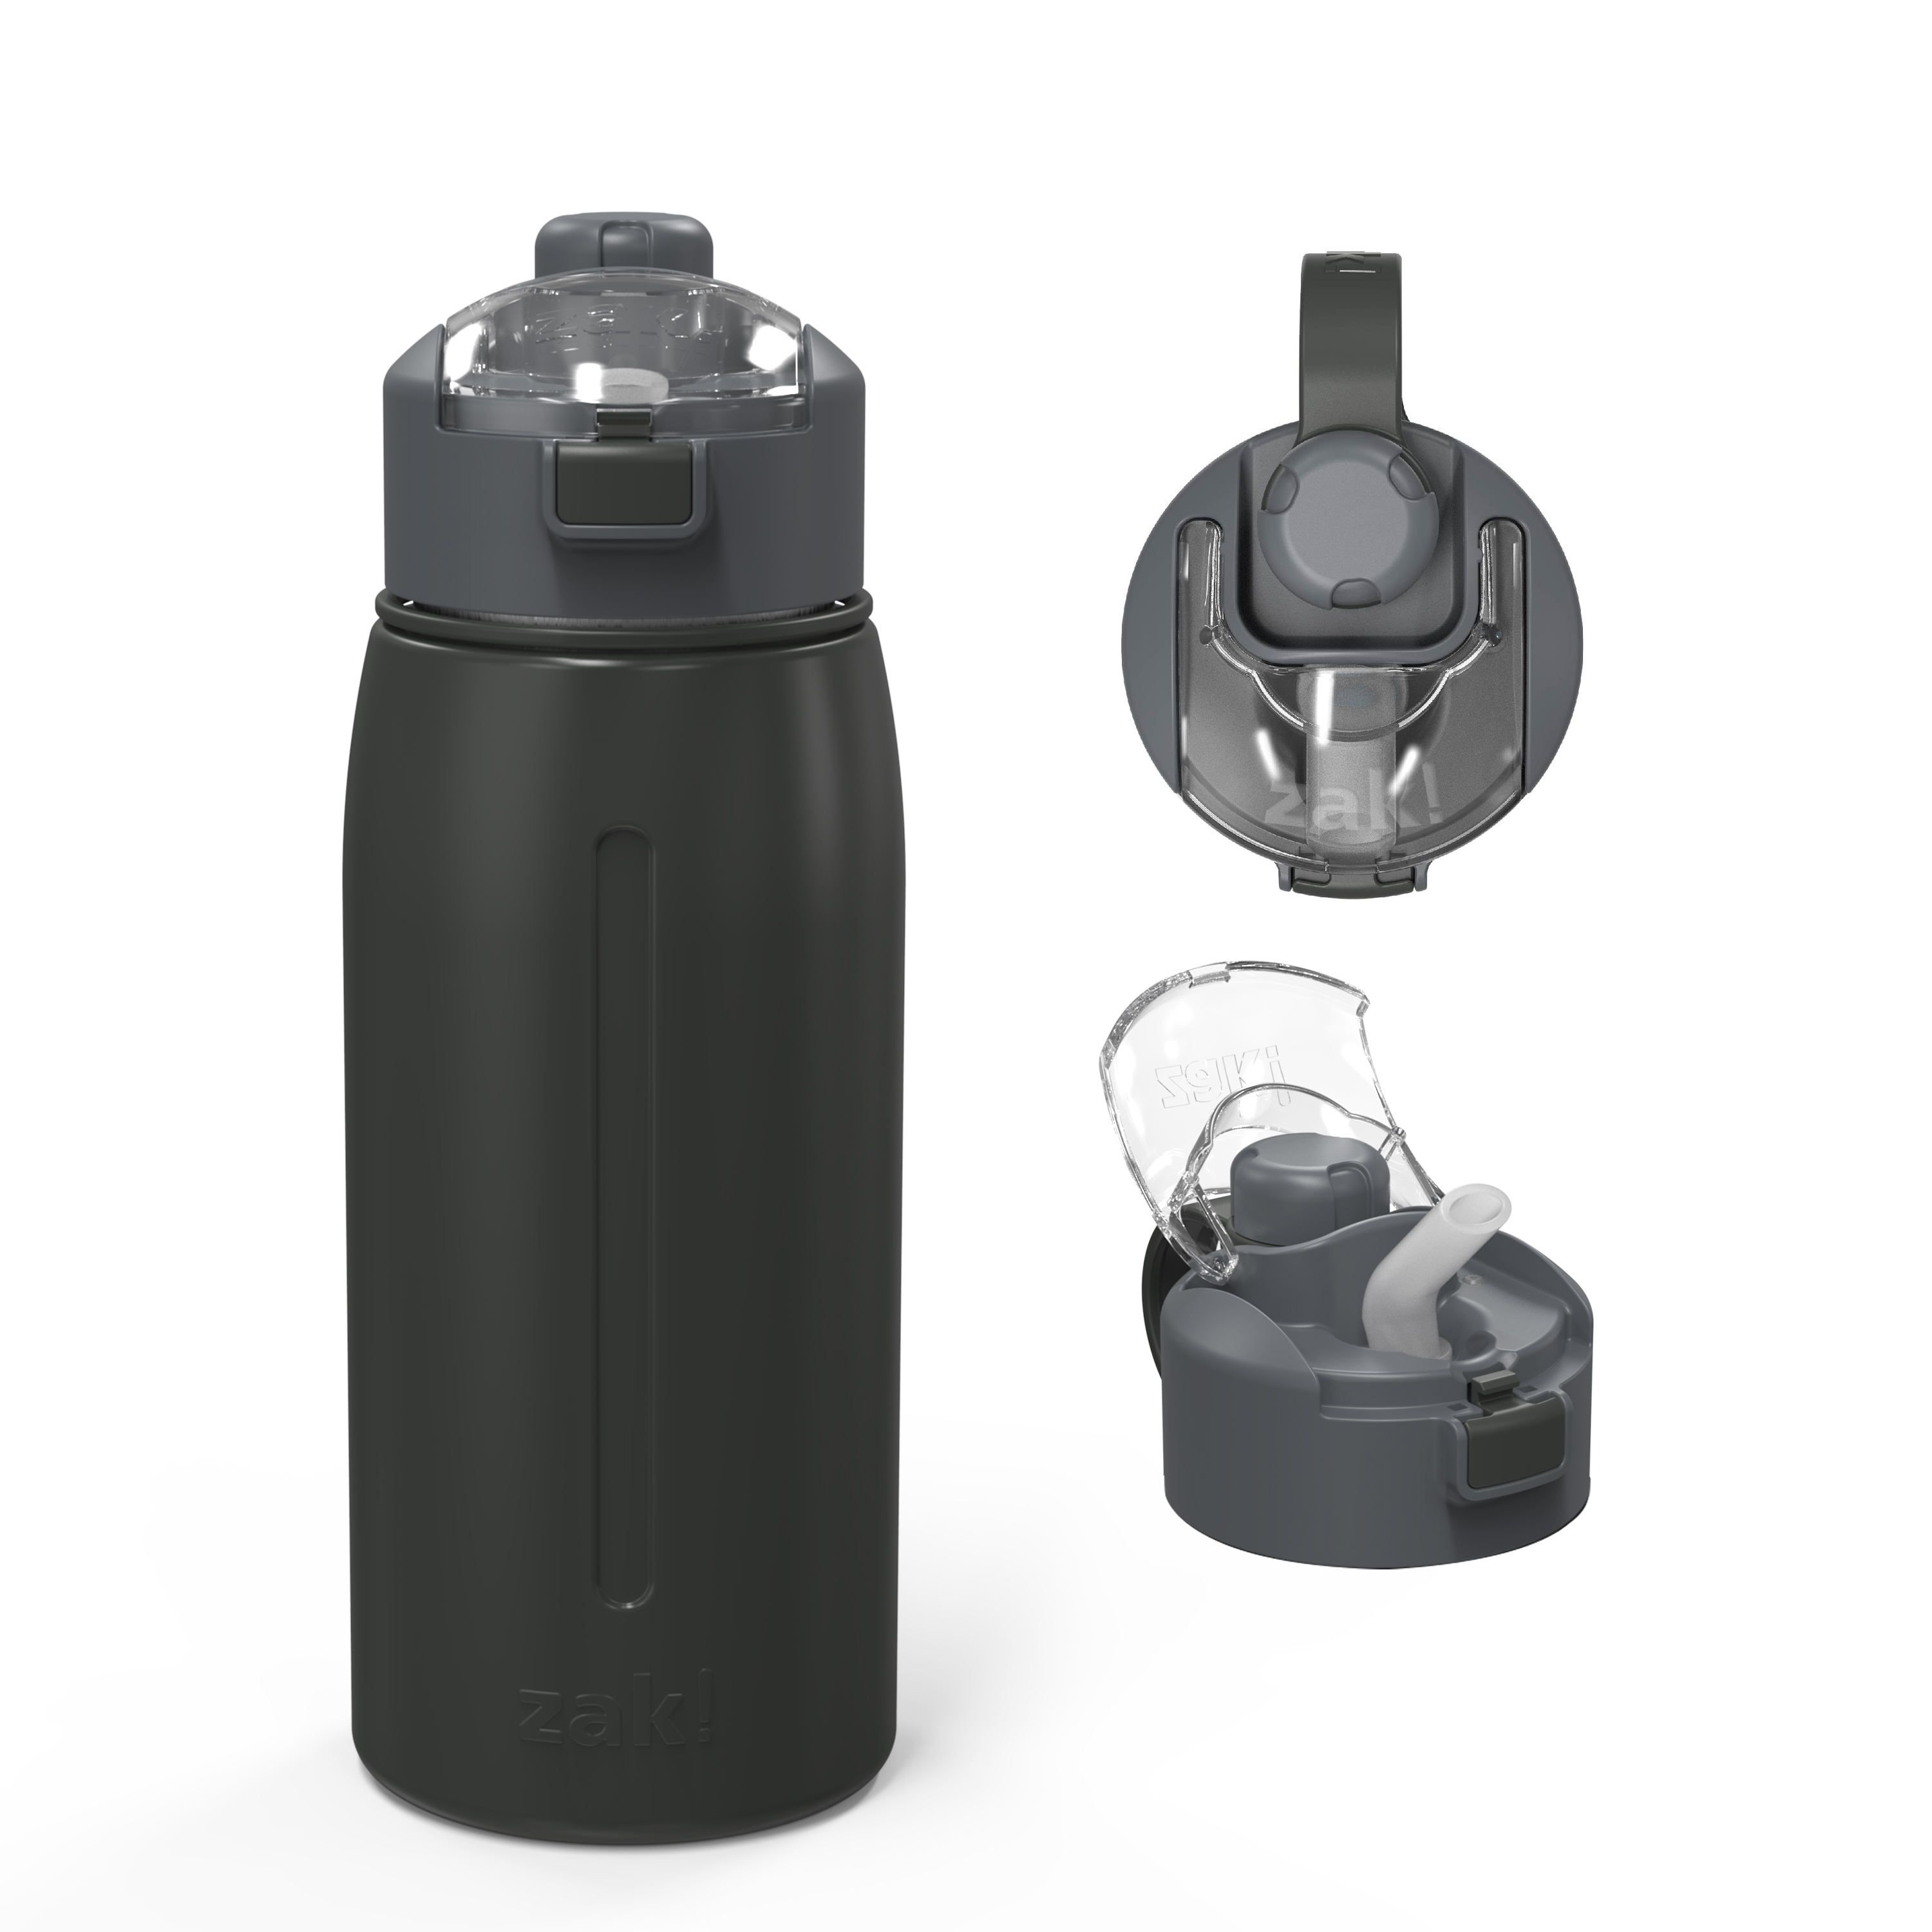 Genesis 24 ounce Vacuum Insulated Stainless Steel Tumbler, Charcoal slideshow image 1